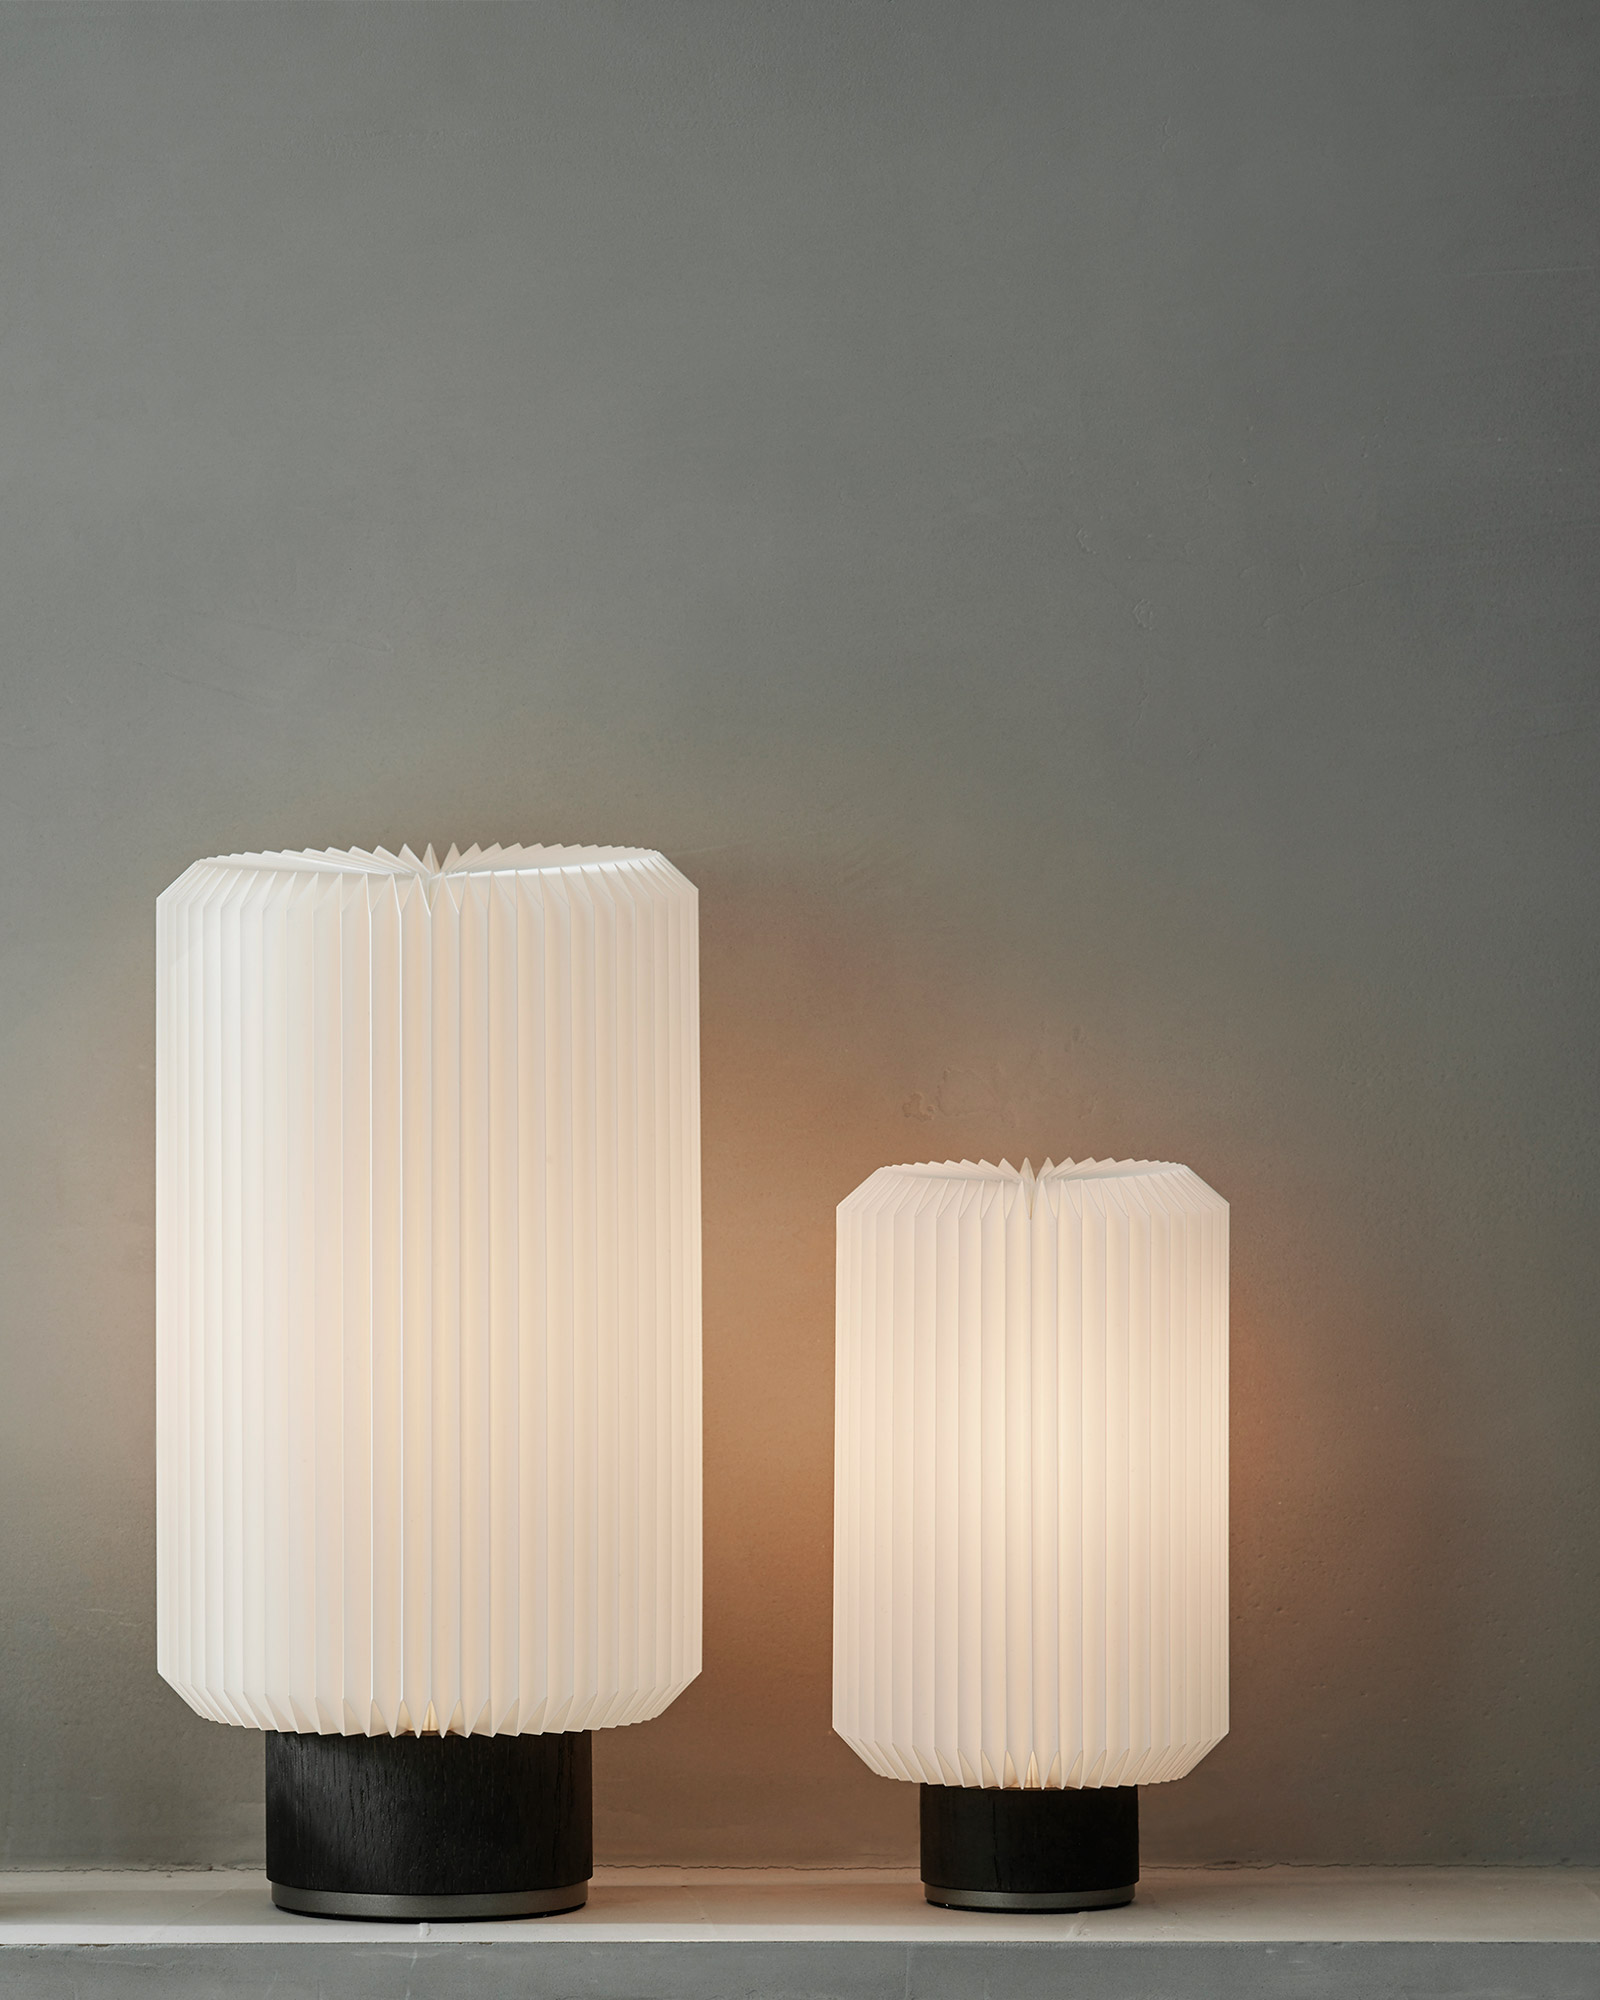 Cylinder table lamp by Le Klint